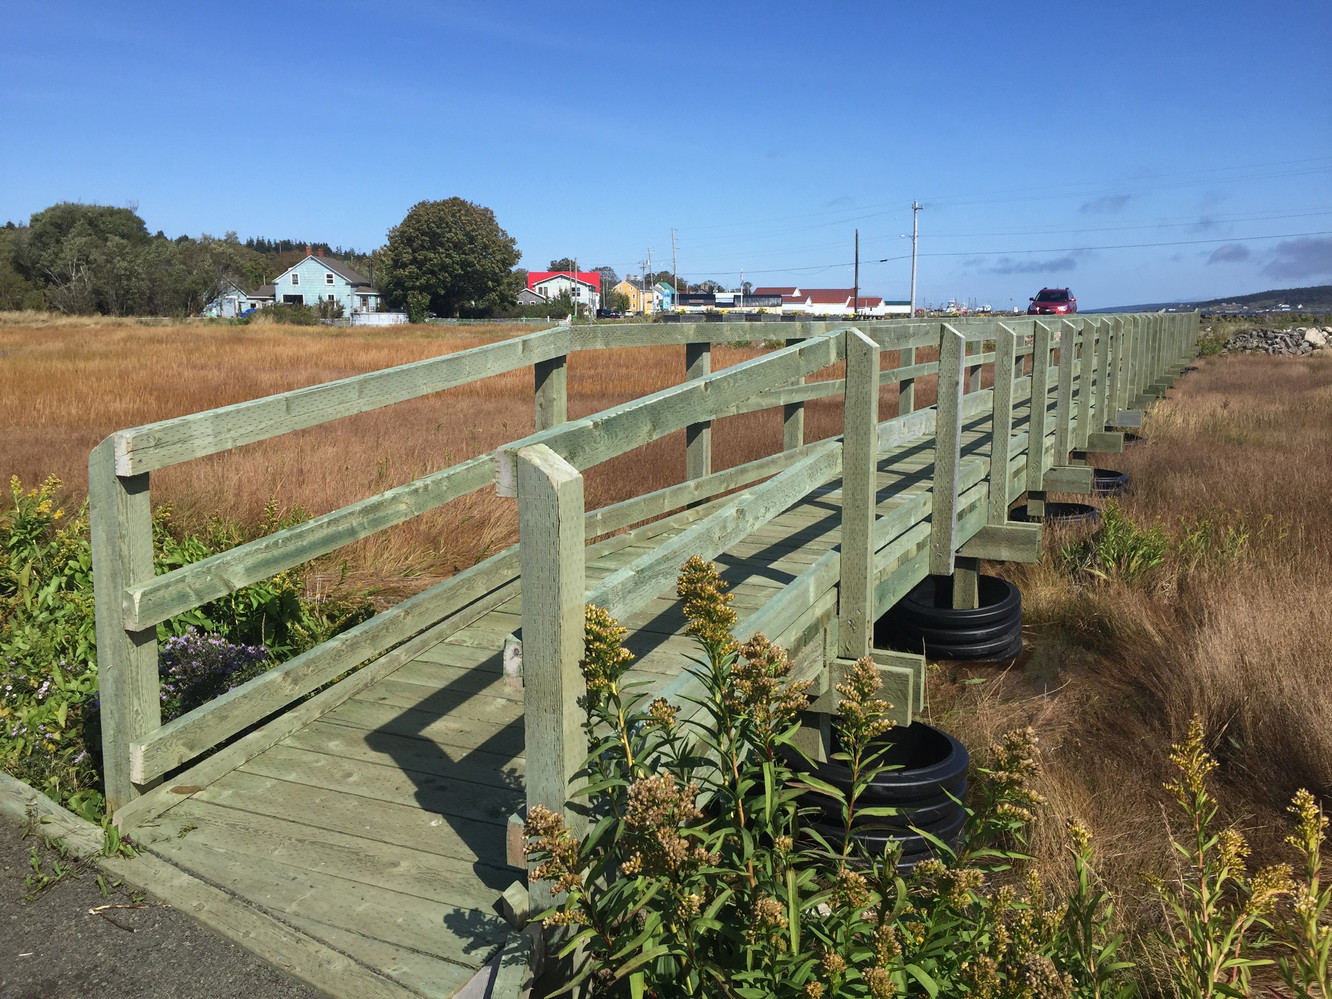 The boardwalk back to the car park